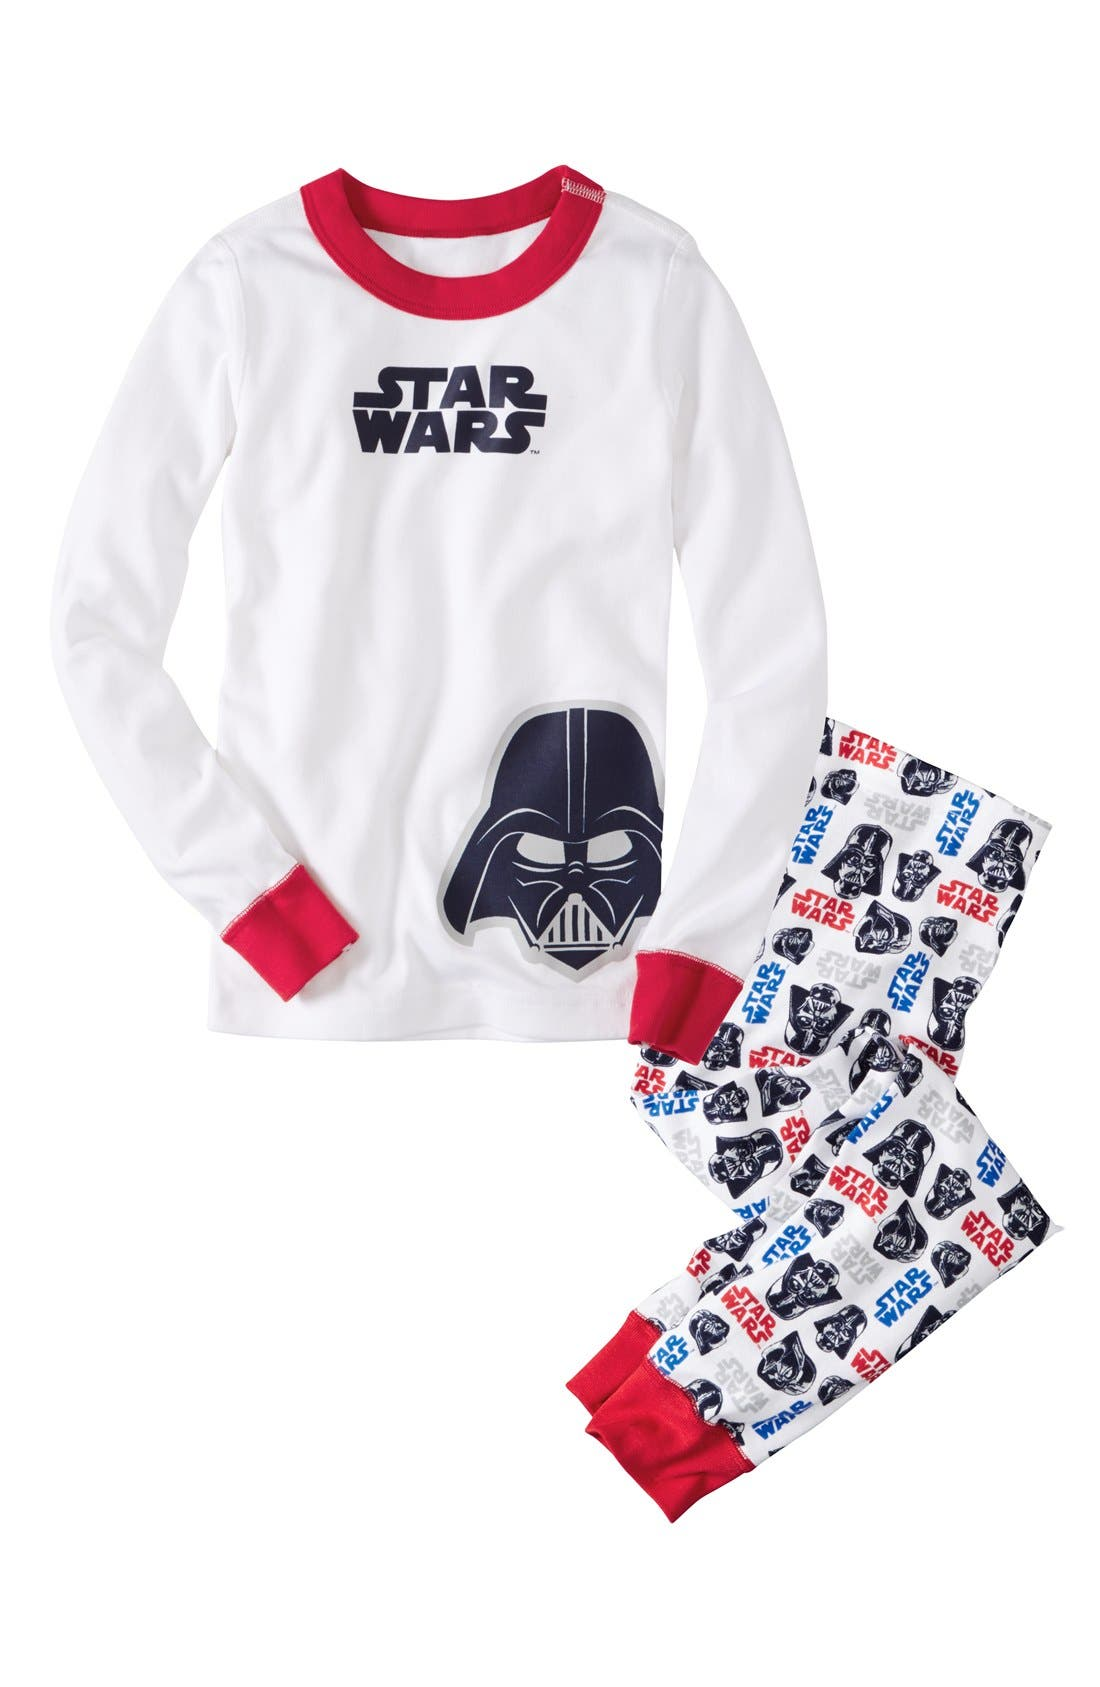 Alternate Image 1 Selected - Hanna Andersson 'Star Wars™ - Darth Vader' Two-Piece Pajamas (Toddler Boys, Little Boys & Big Boys)